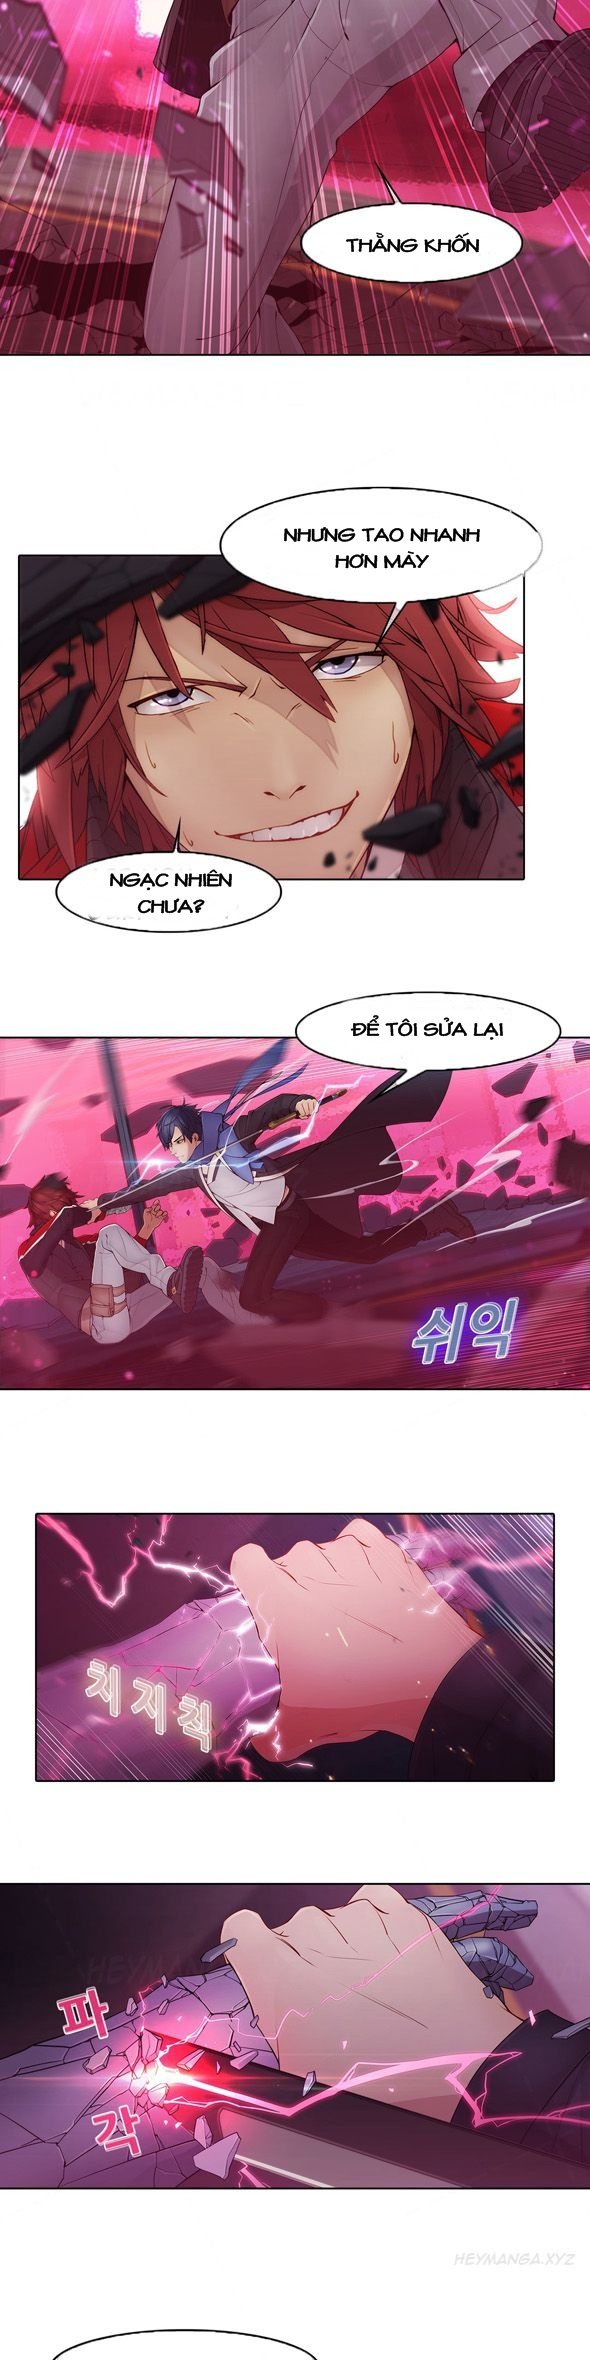 HentaiVN.net - Ảnh 10 - The Matrix - Chap 9